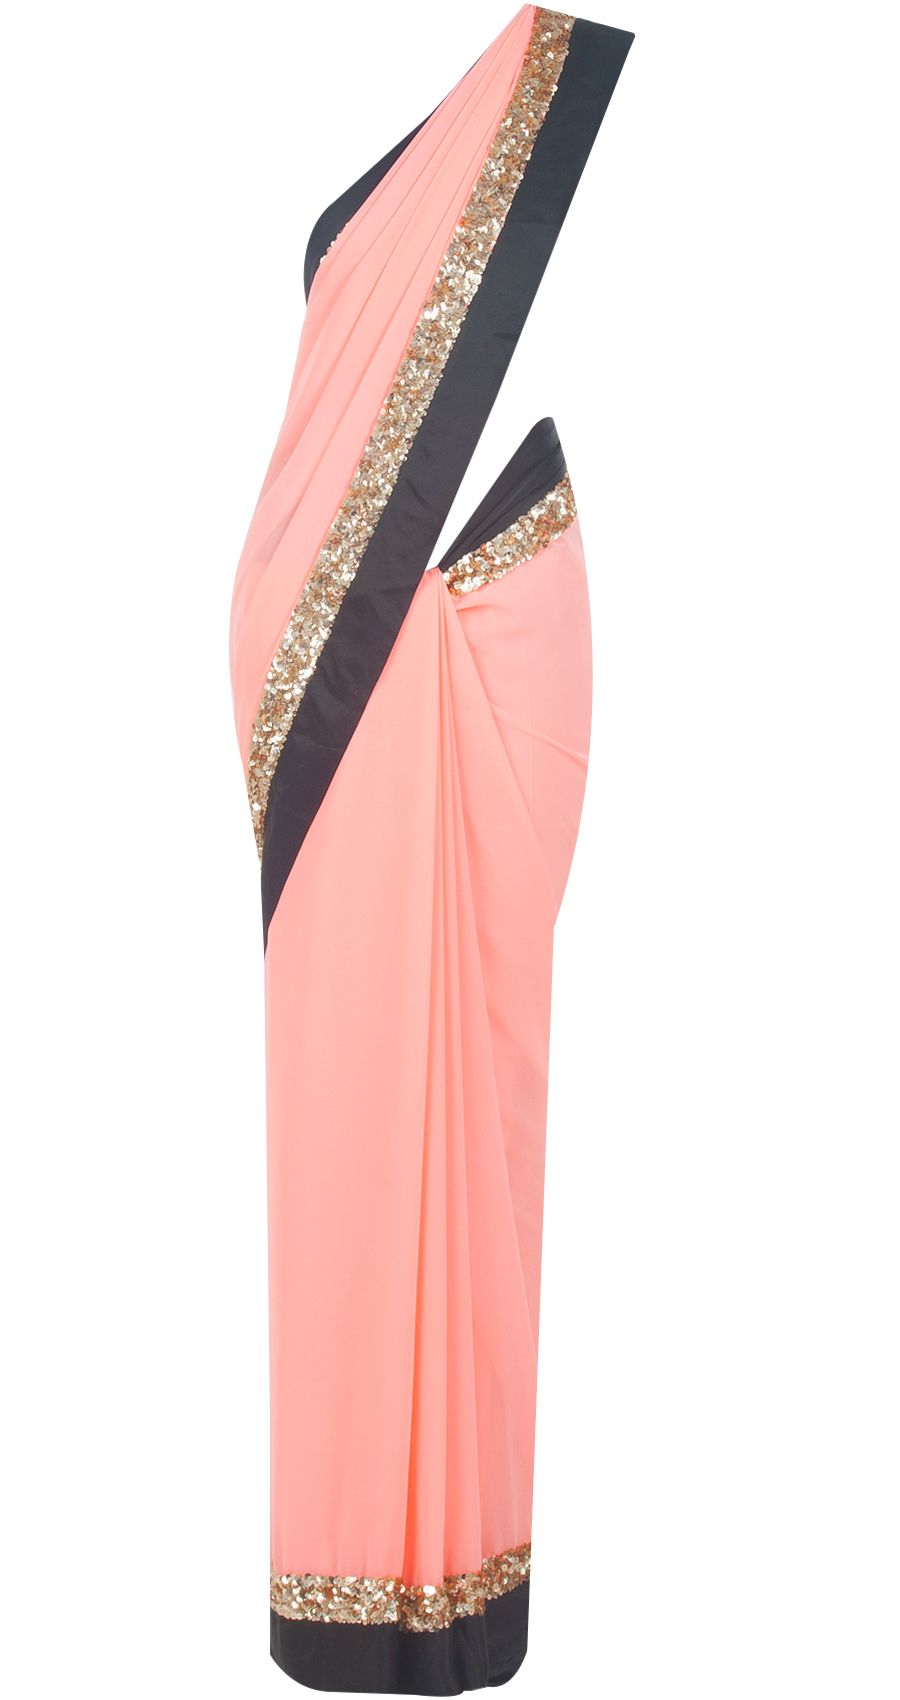 Passion homes borders gold zardozi border handmade designers - Pink Sari With Gold Sequinned And Black Satin Border By Atsu Shop At Http